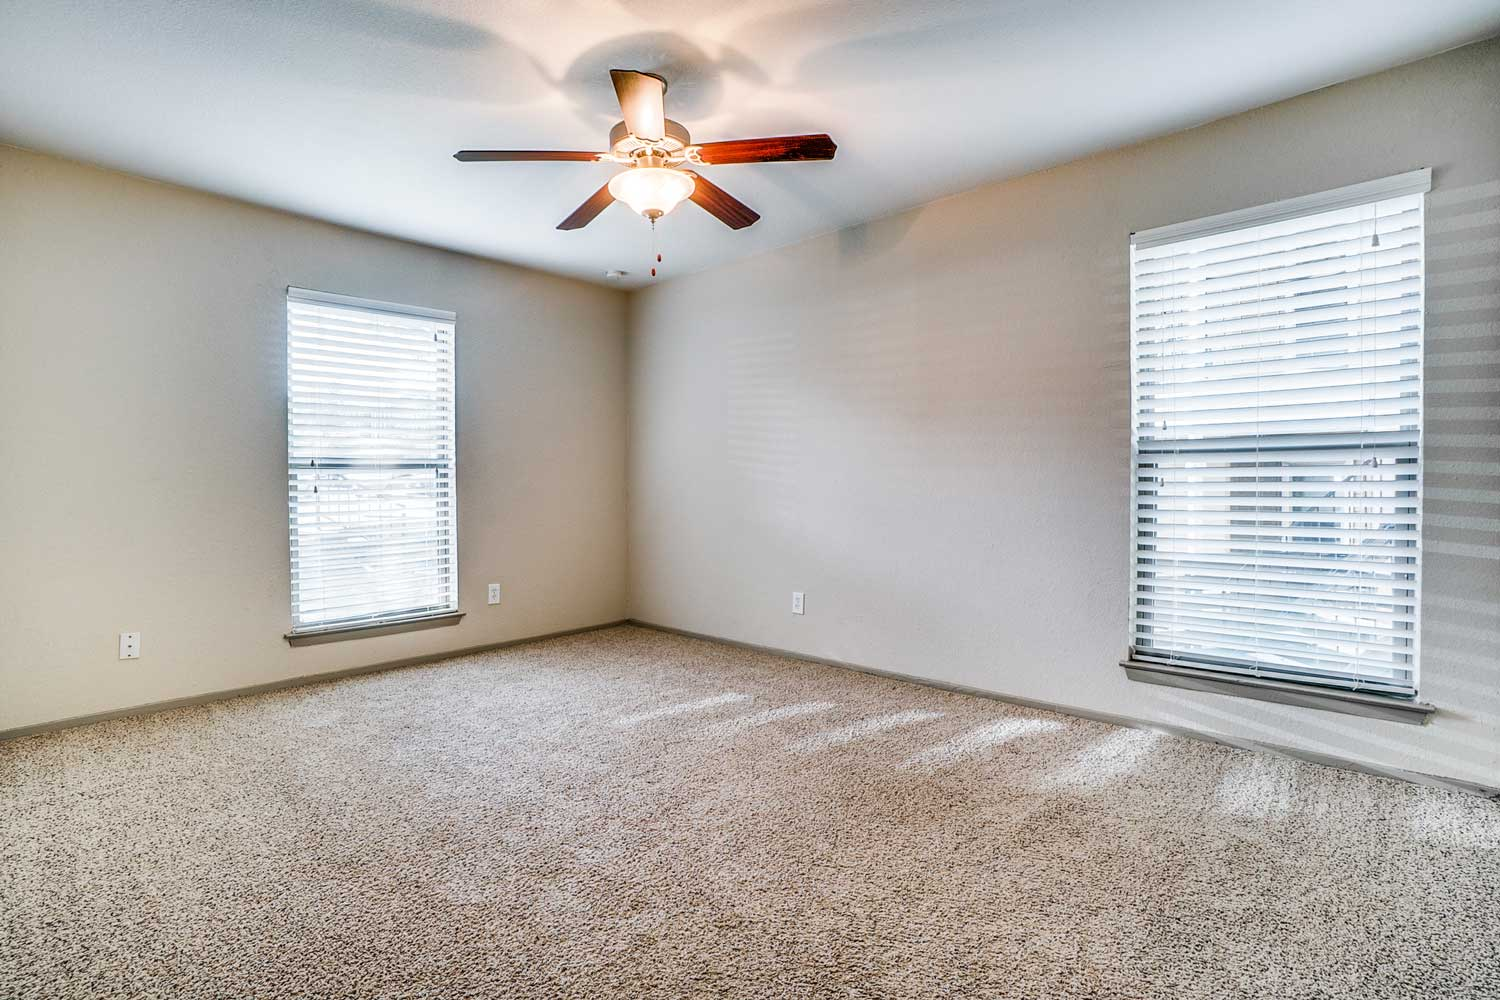 Ceiling Fans at Riviera Apartments in Dallas, Texas